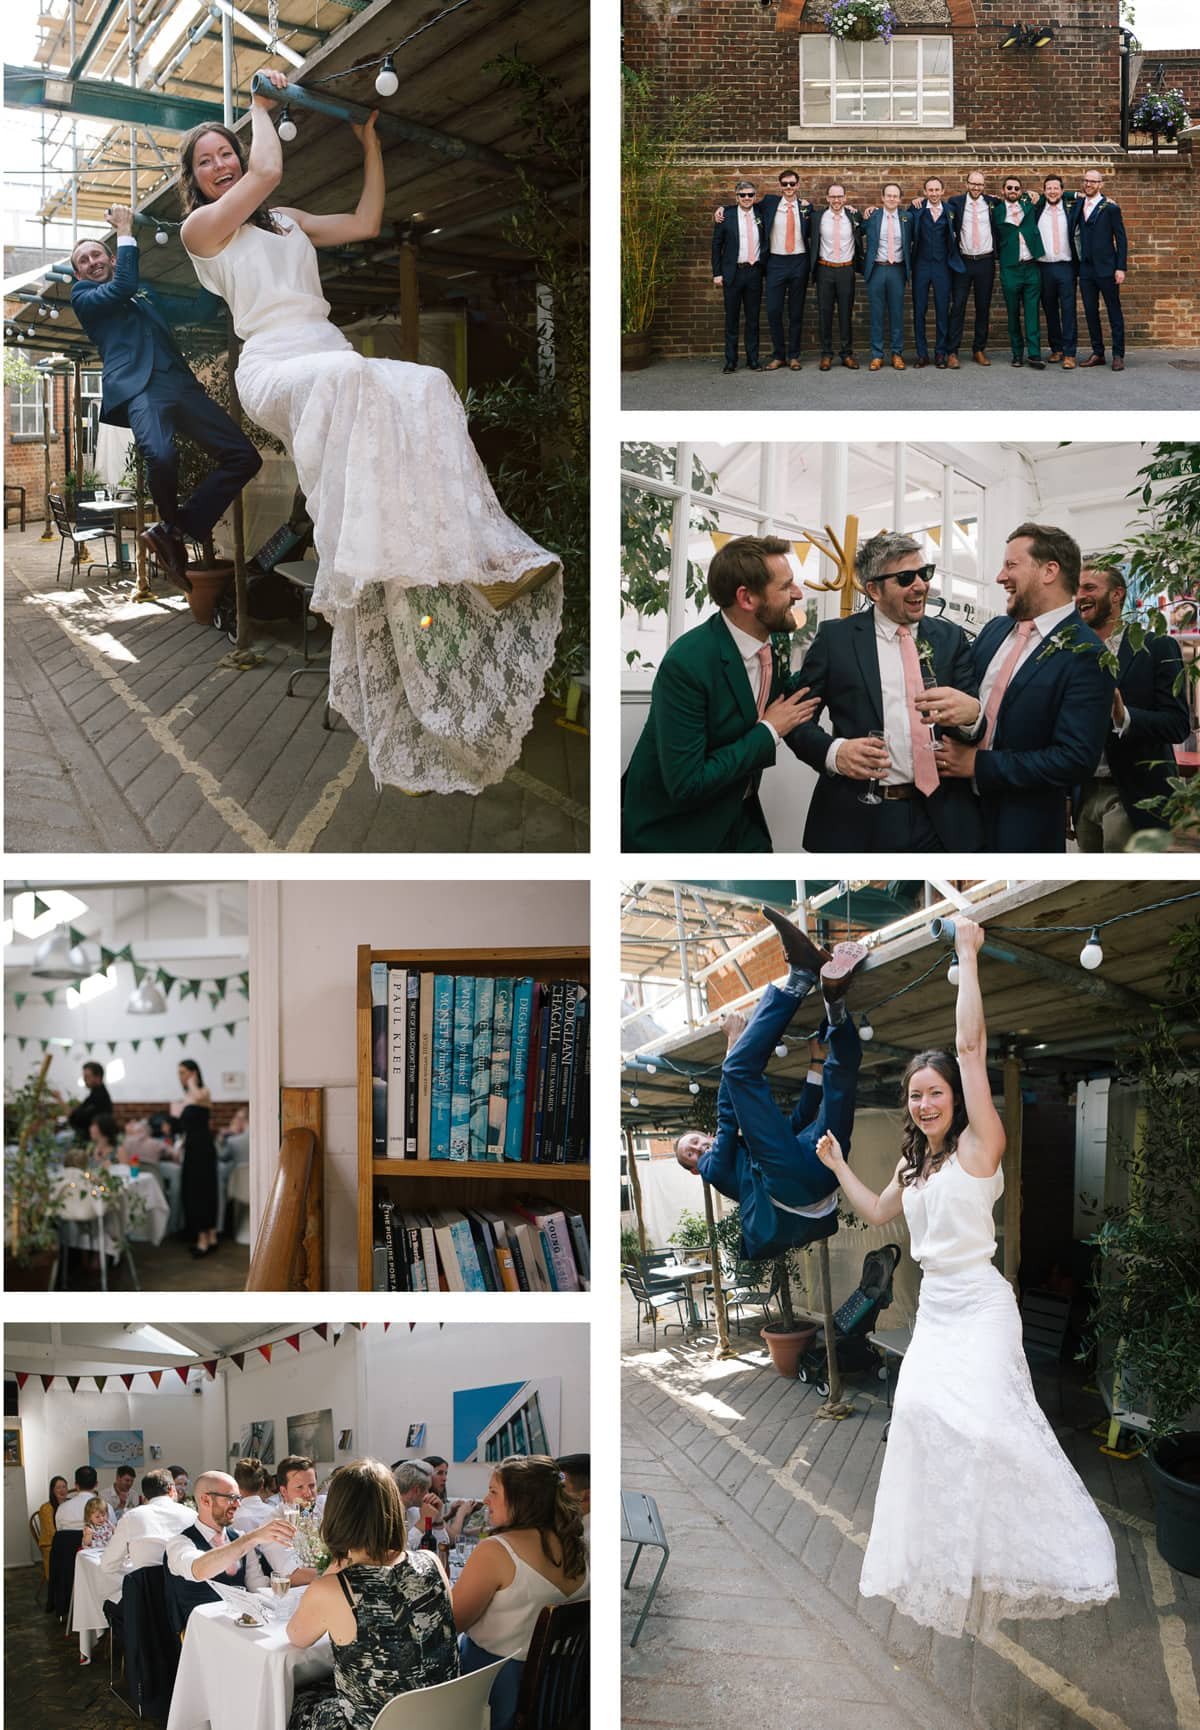 Collage of guests relaxing at wedding party. Bride and groom climb on beams outside venue.